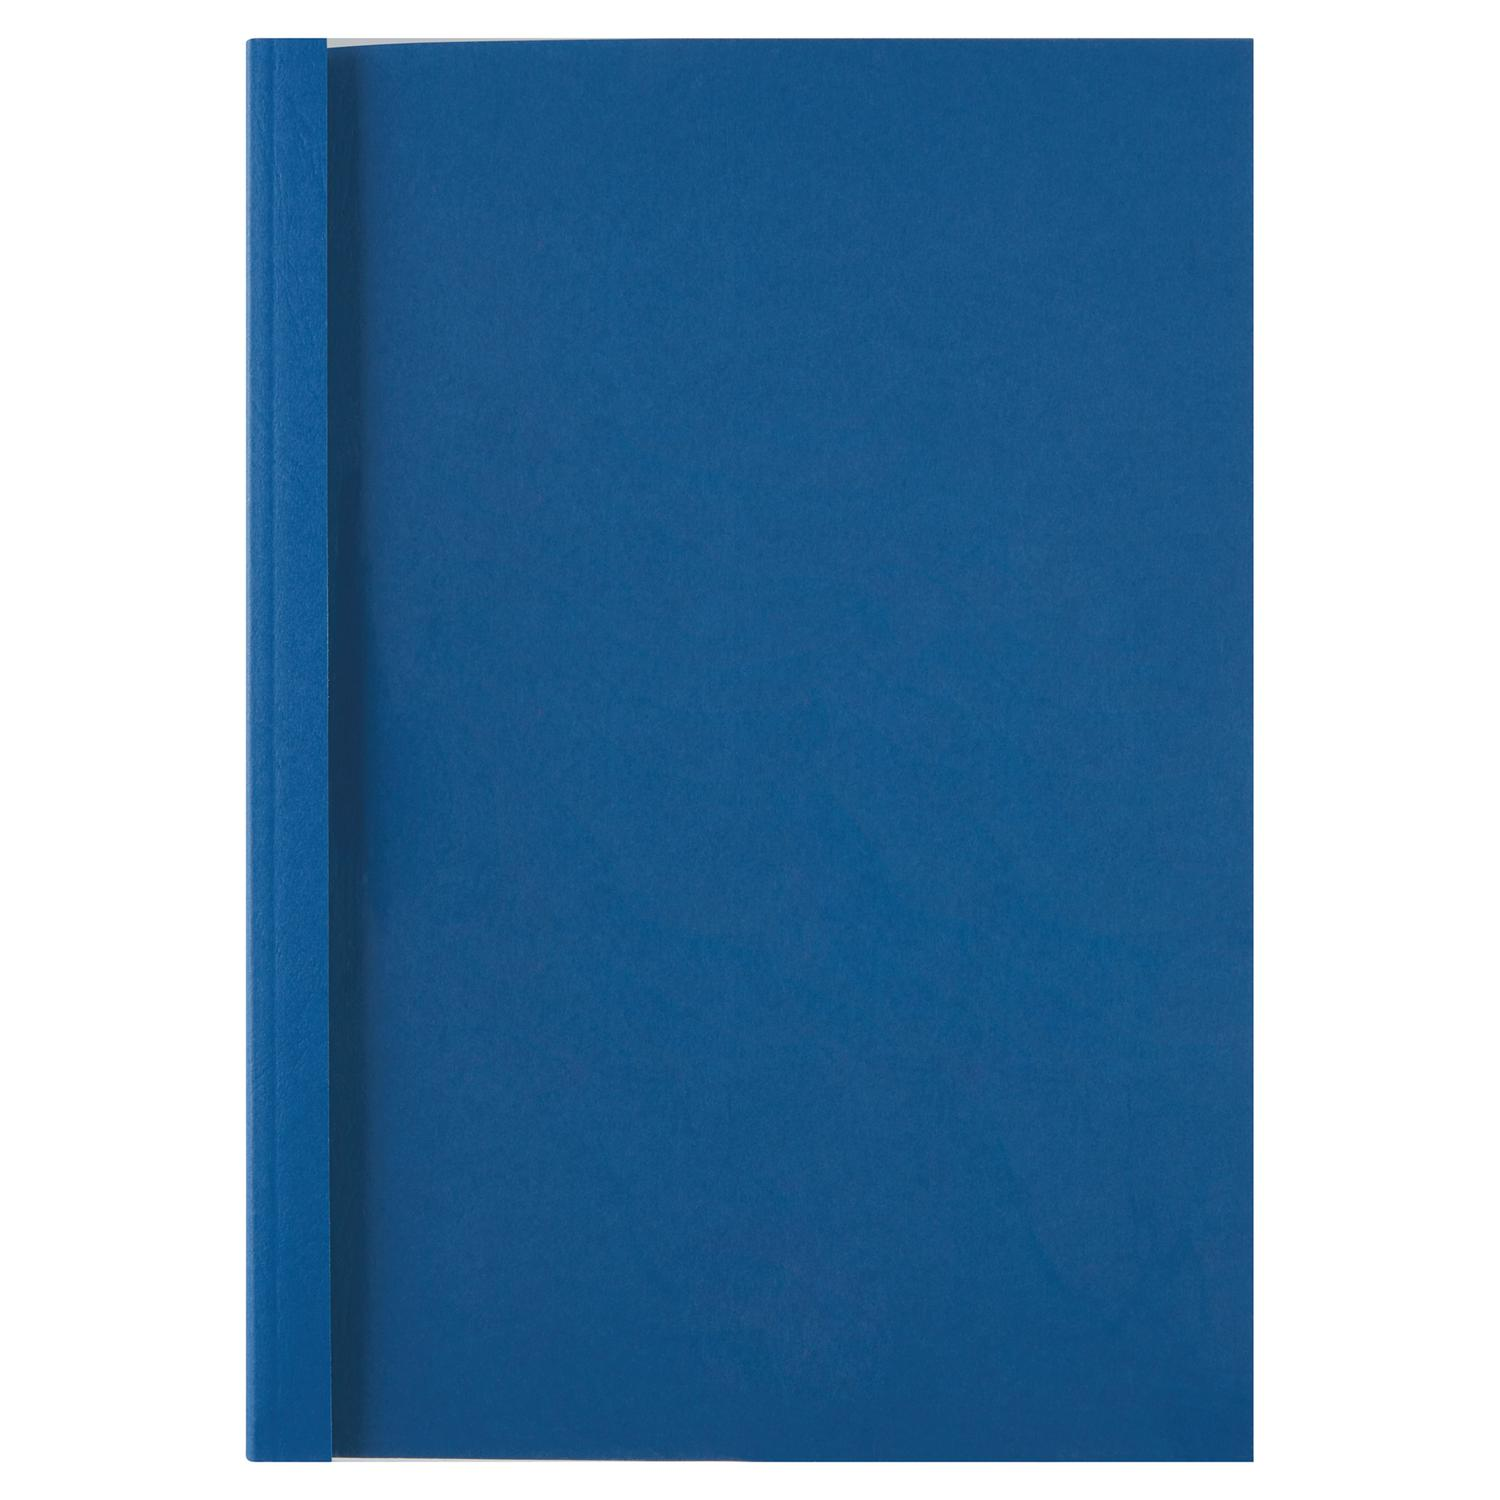 Thermal Bind Covers GBC A4 Thermal Binding Covers 3mm Royal Blue PK1000